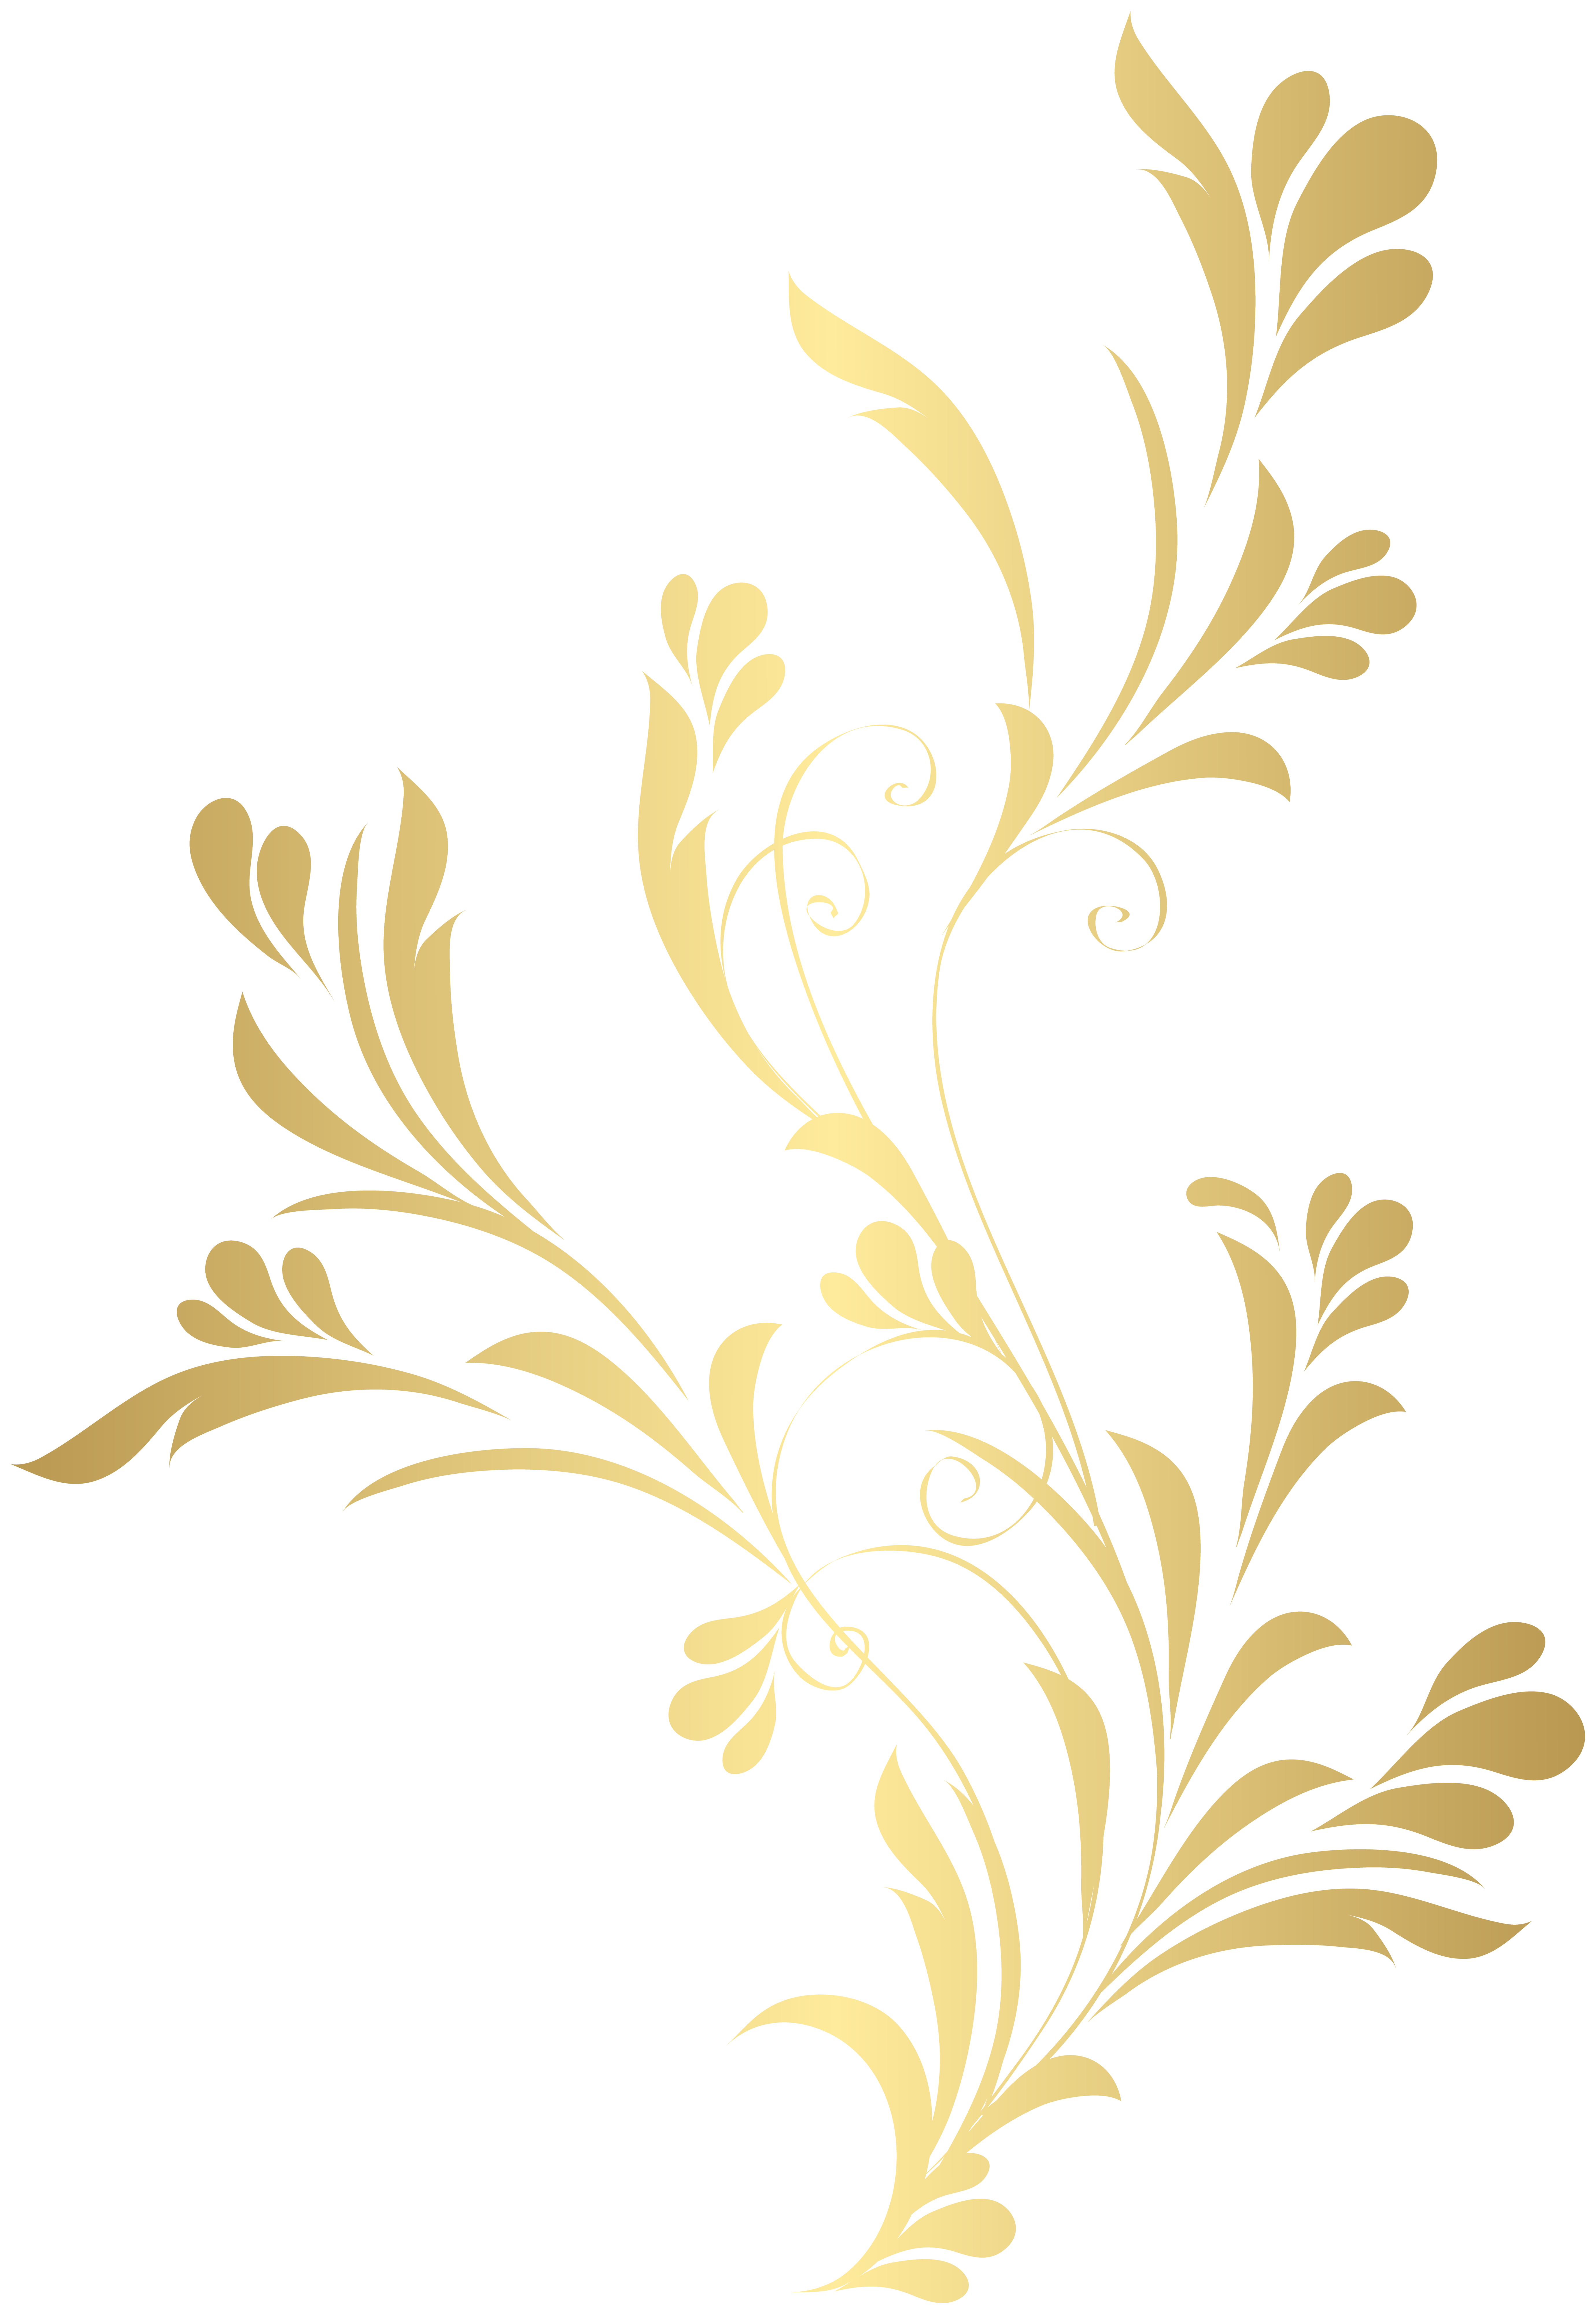 Gold Floral Png - Floral Gold Element PNG Clip Art | Gallery Yopriceville - High ...